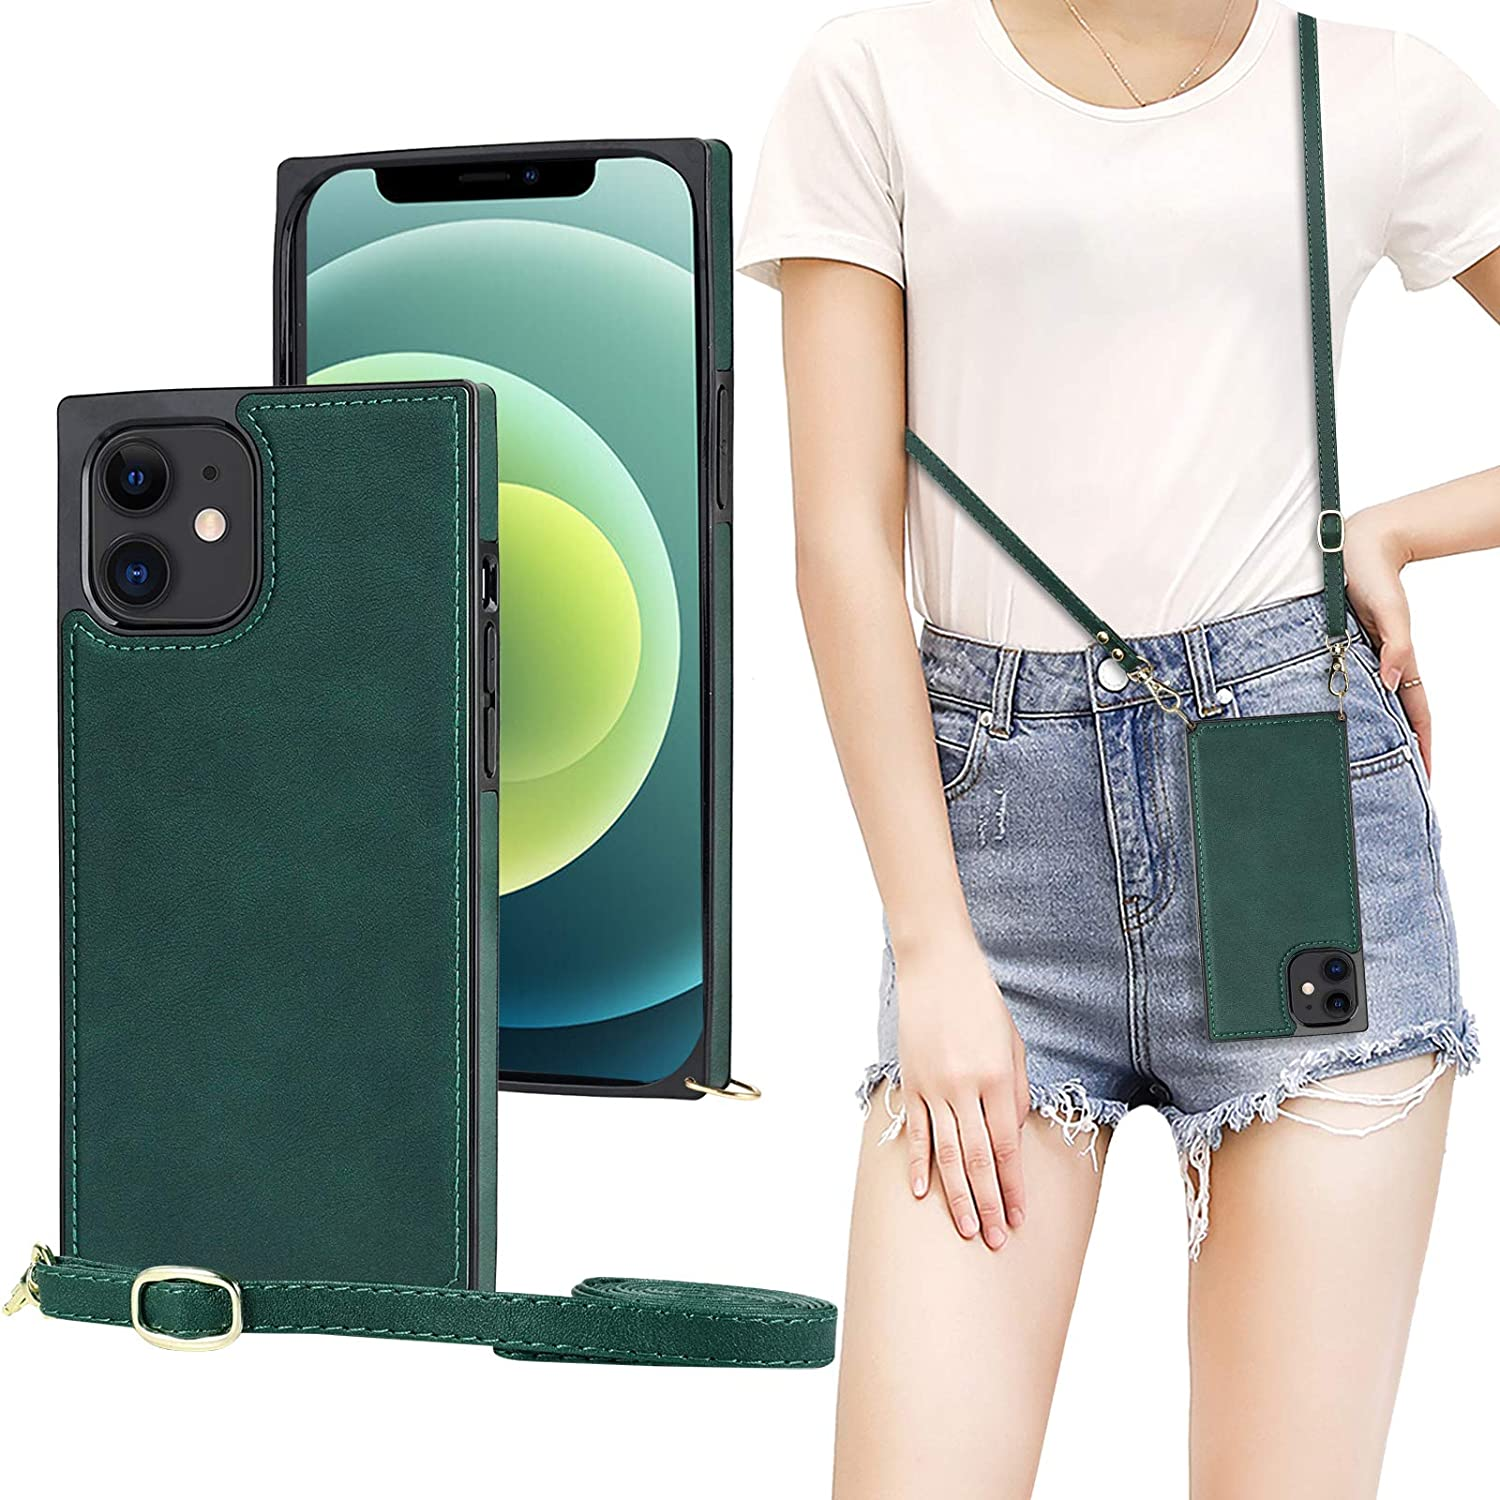 Vaburs Compatible with iPhone 12 Mini Crossbody Case with Strap Full Body Protection PU Leather Shockproof Protection Neck Cord Lanyard Strap Cover for iPhone 12 Mini 5.4 Inch(Green)